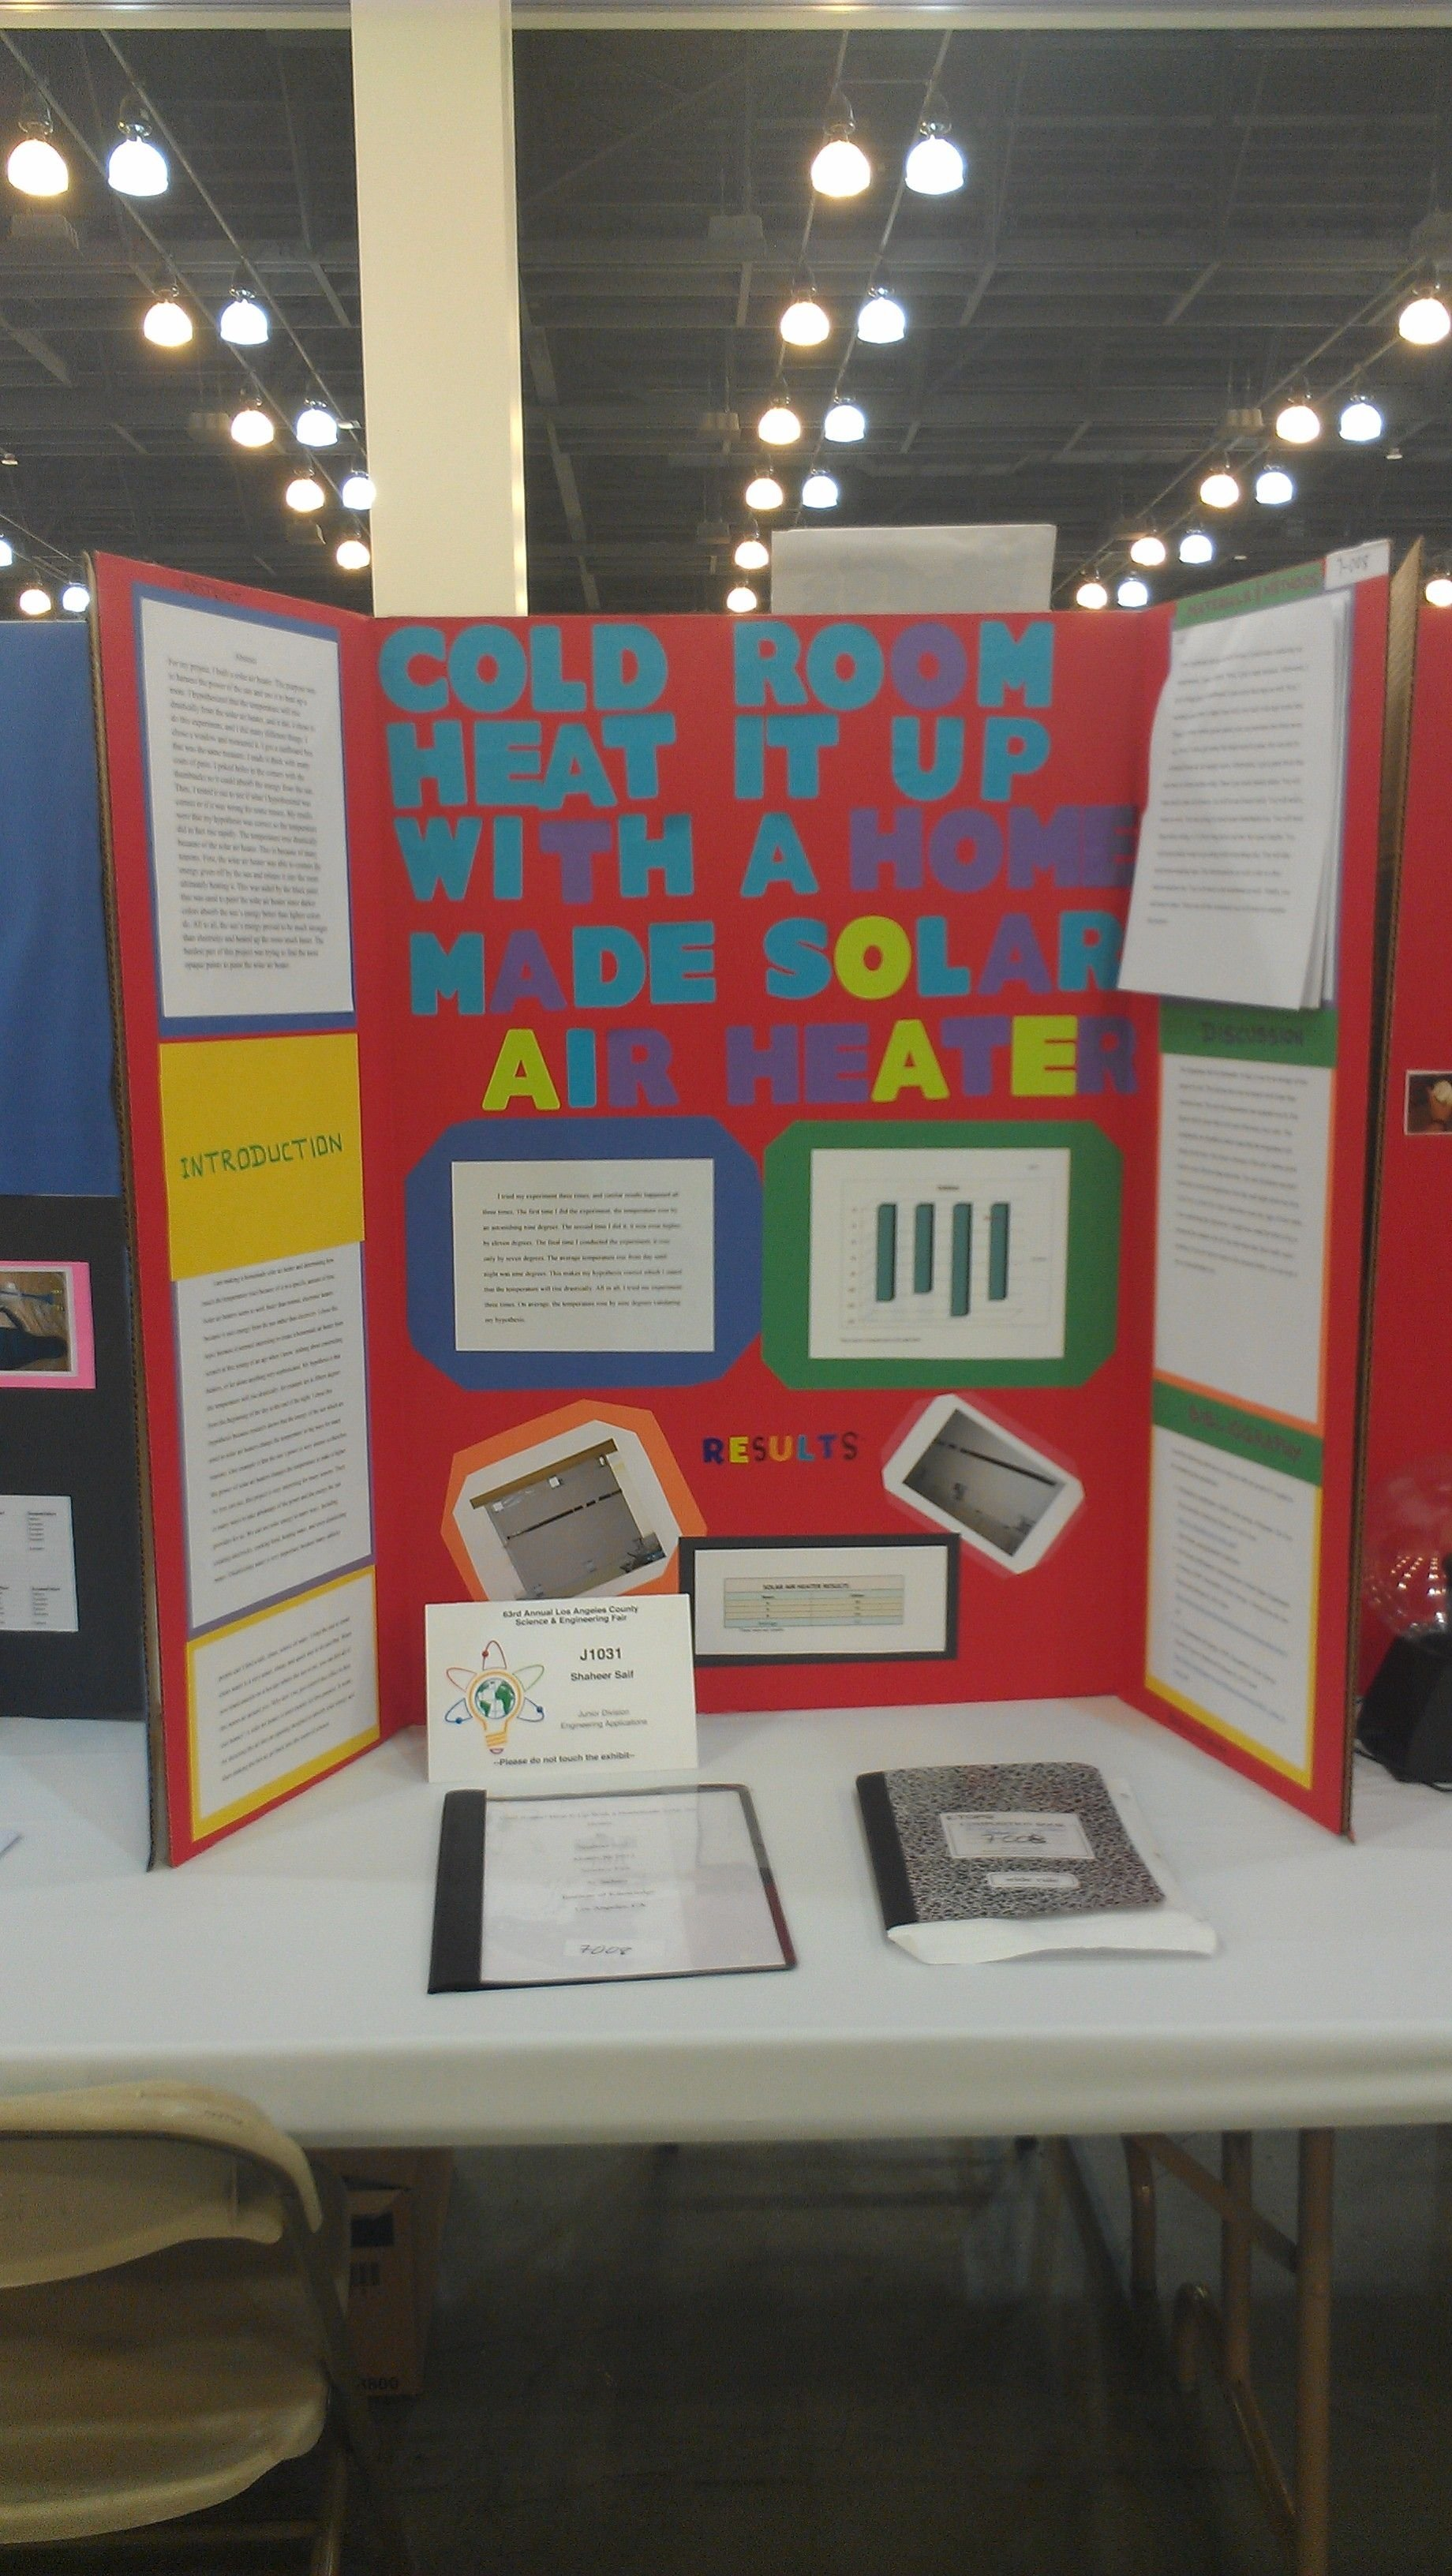 Attractive Grade Science Projects Ideas Fair Project On A Solar Heater Jpg 1840x3264 6th